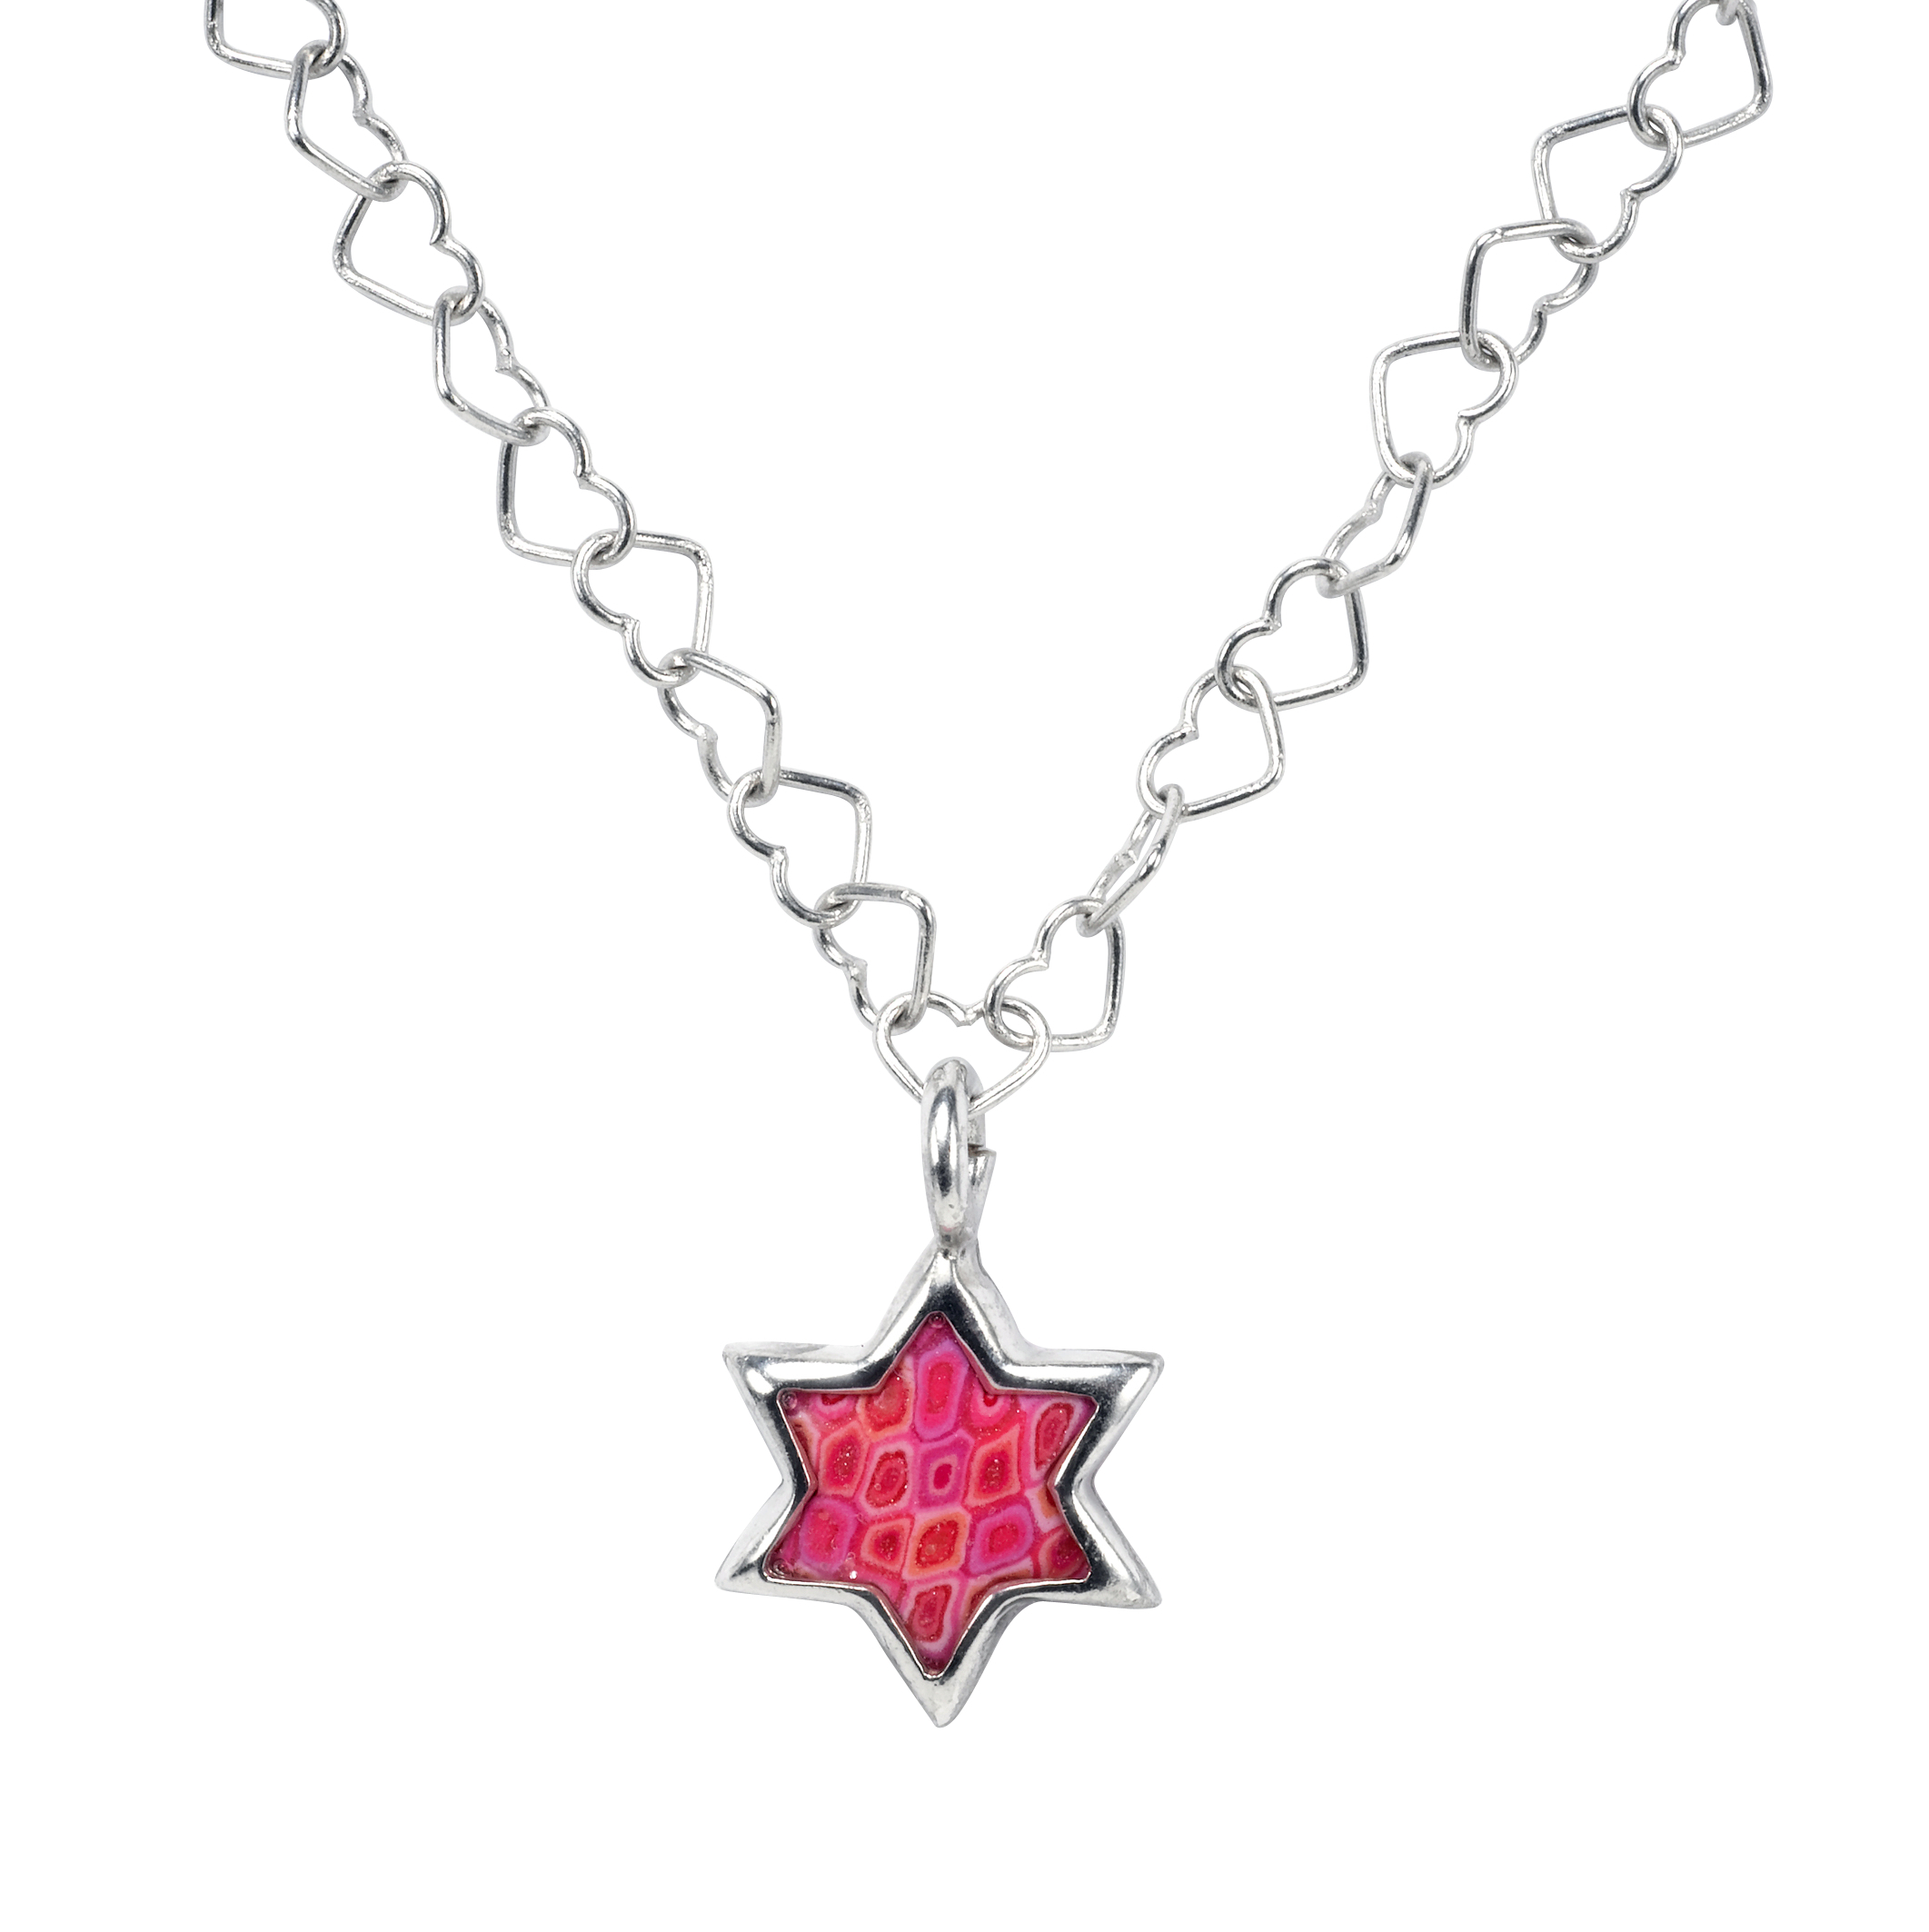 Pink Star Of David Pendant With Heart Chain Necklace Regarding 2019 Joined Hearts Chain Necklaces (Gallery 9 of 25)